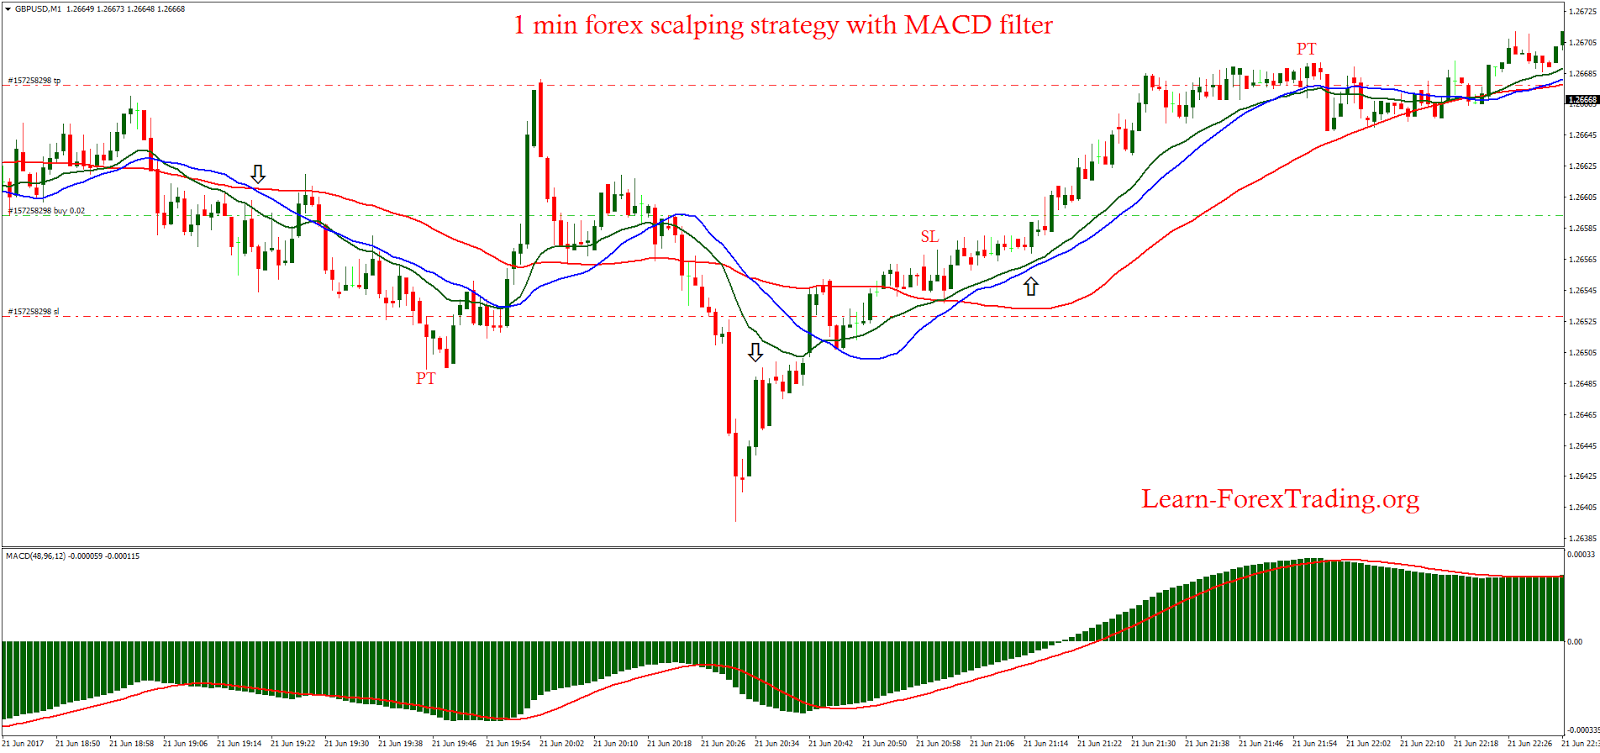 MACD_SCALPING